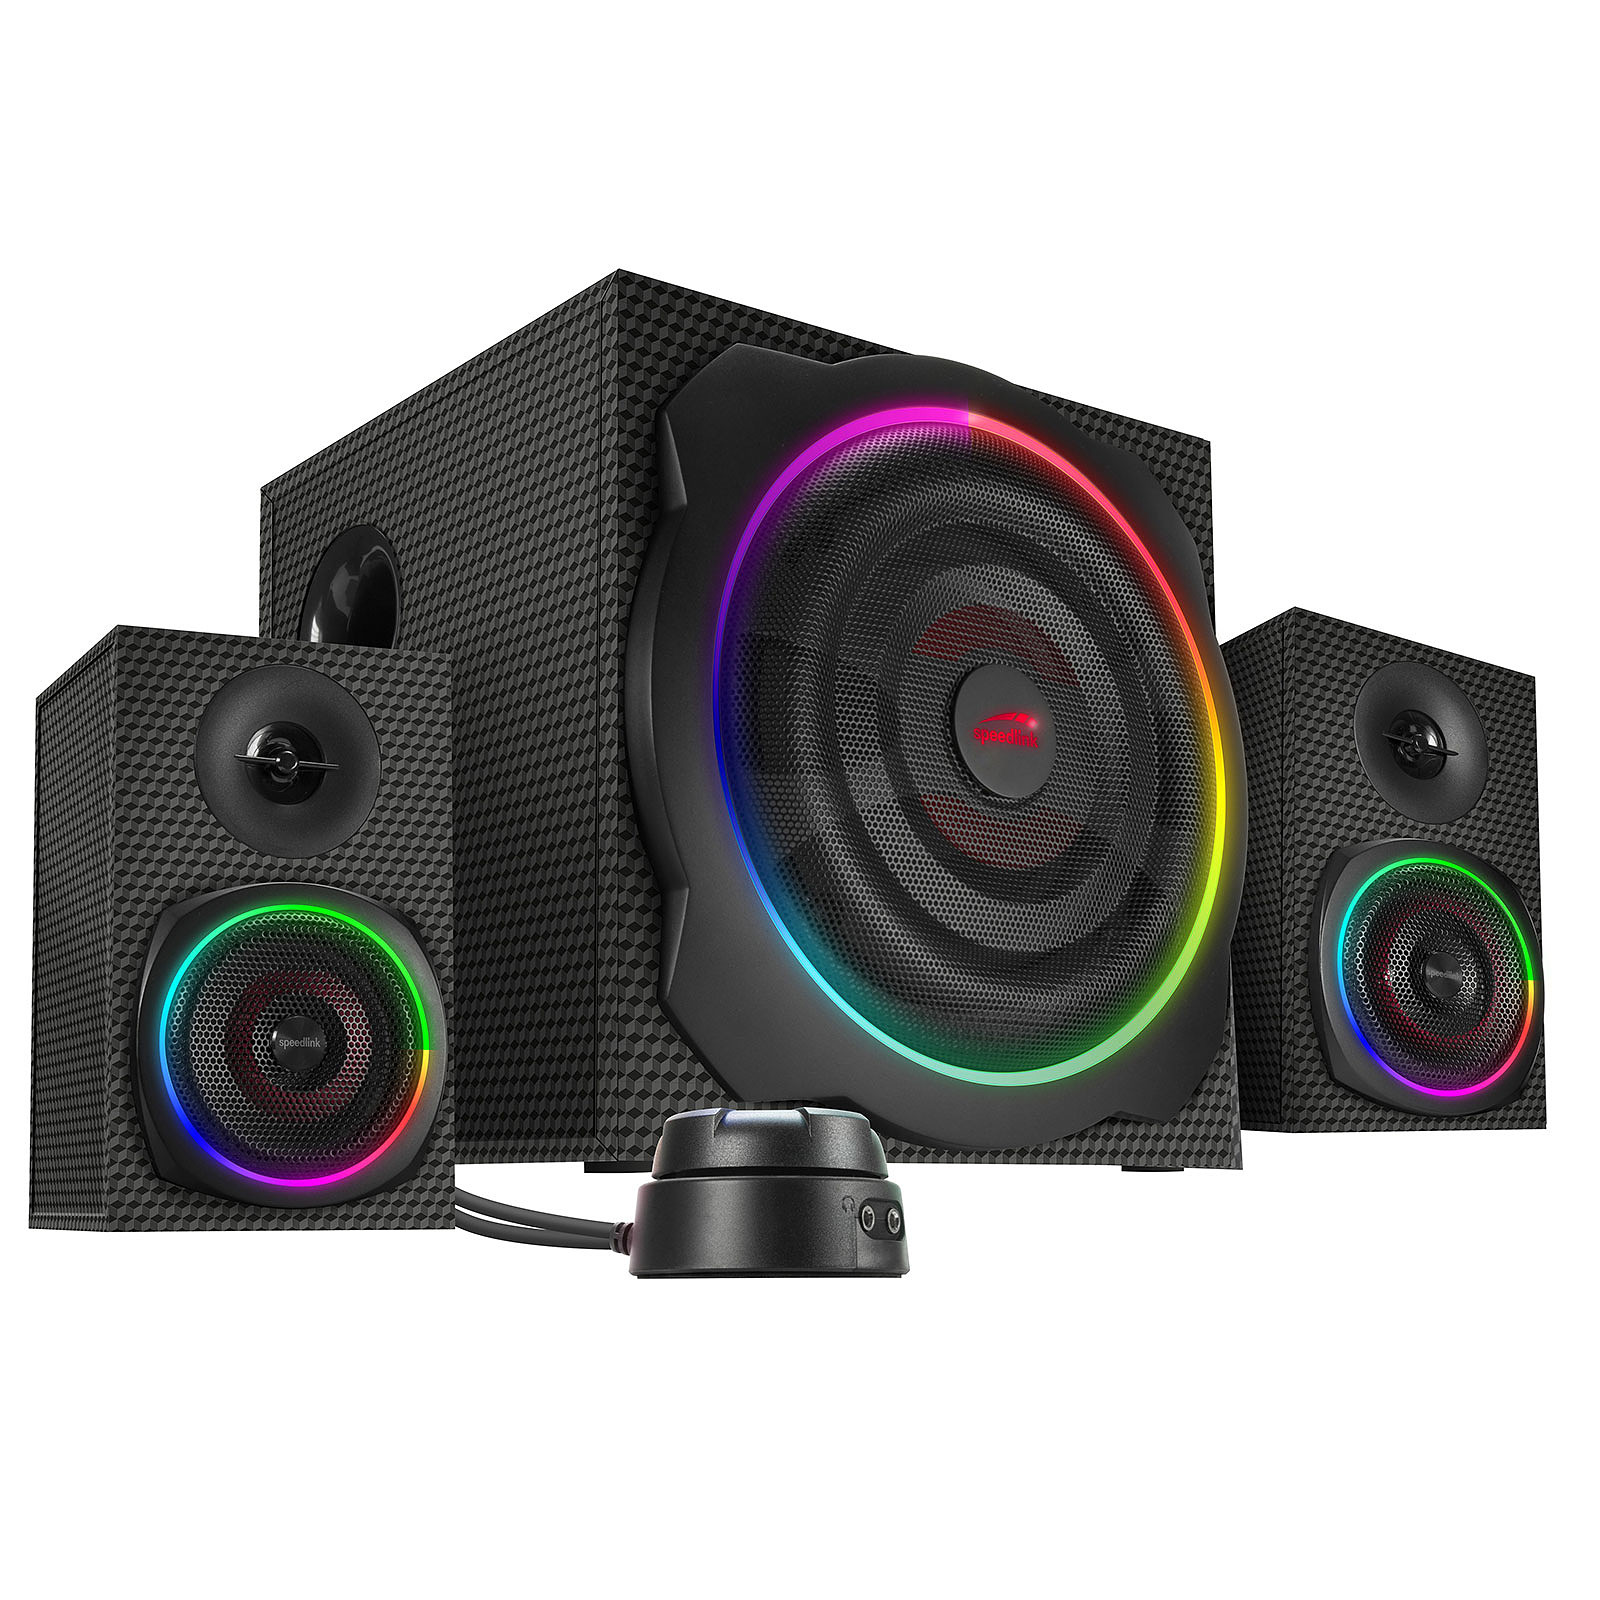 Speedlink Gravity Carbon RGB